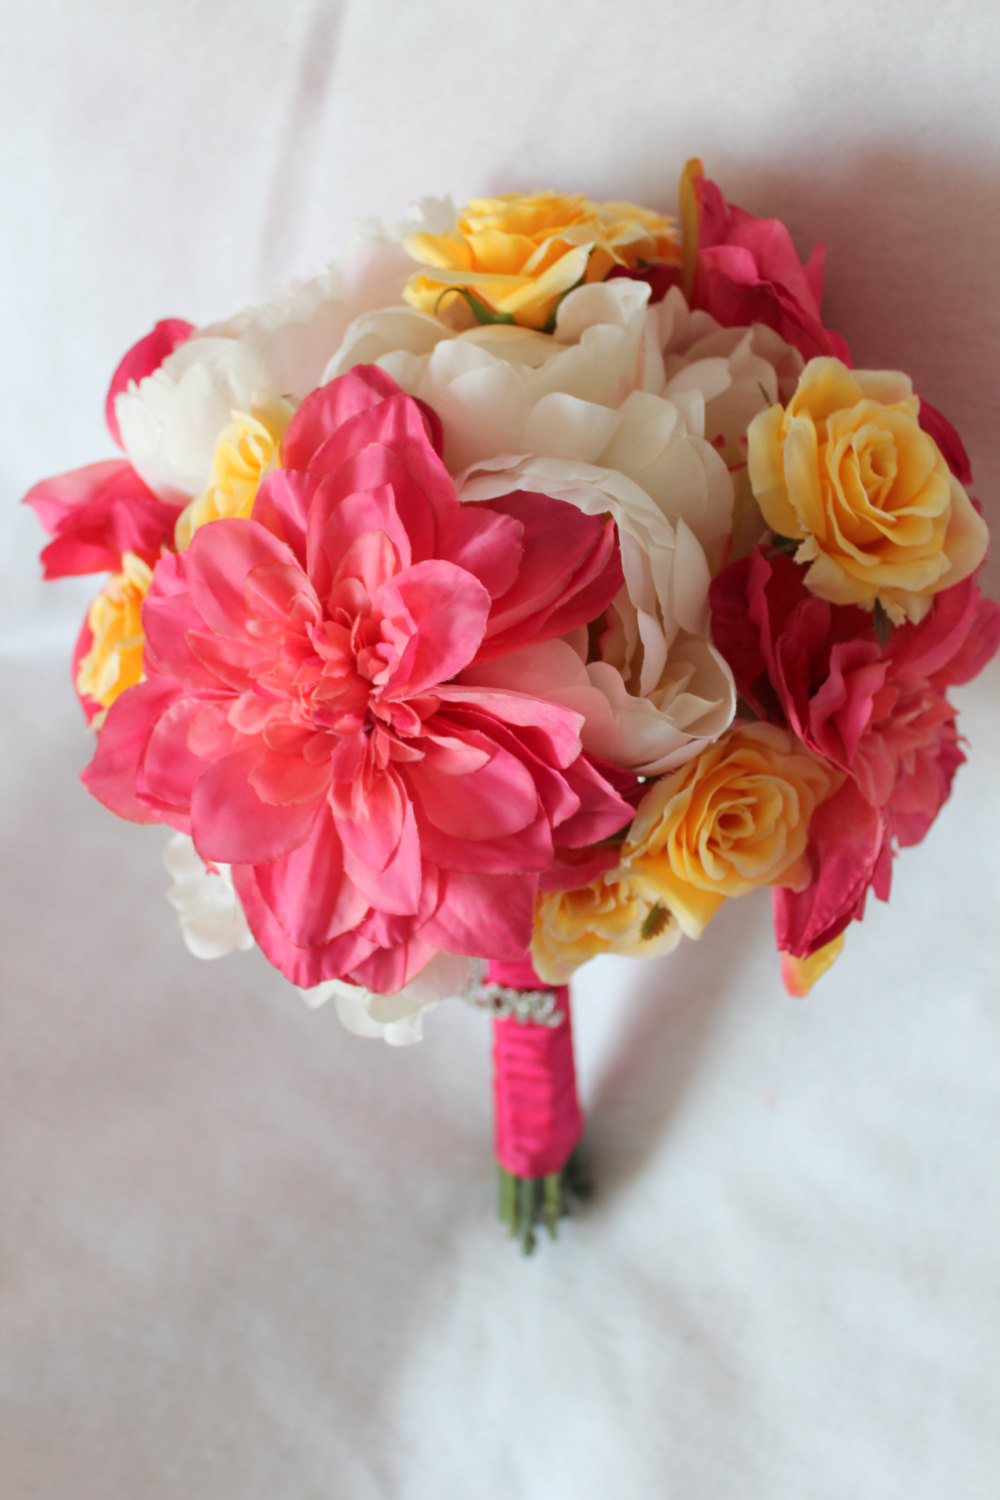 minneapolis-silk-florist-Dahlia-Peony-Rose-Silk-Bouquet-in-Pink-Yellow-White-with-Rhinestone-Love-Buckle-and-Matching-Boutonniere.jpg